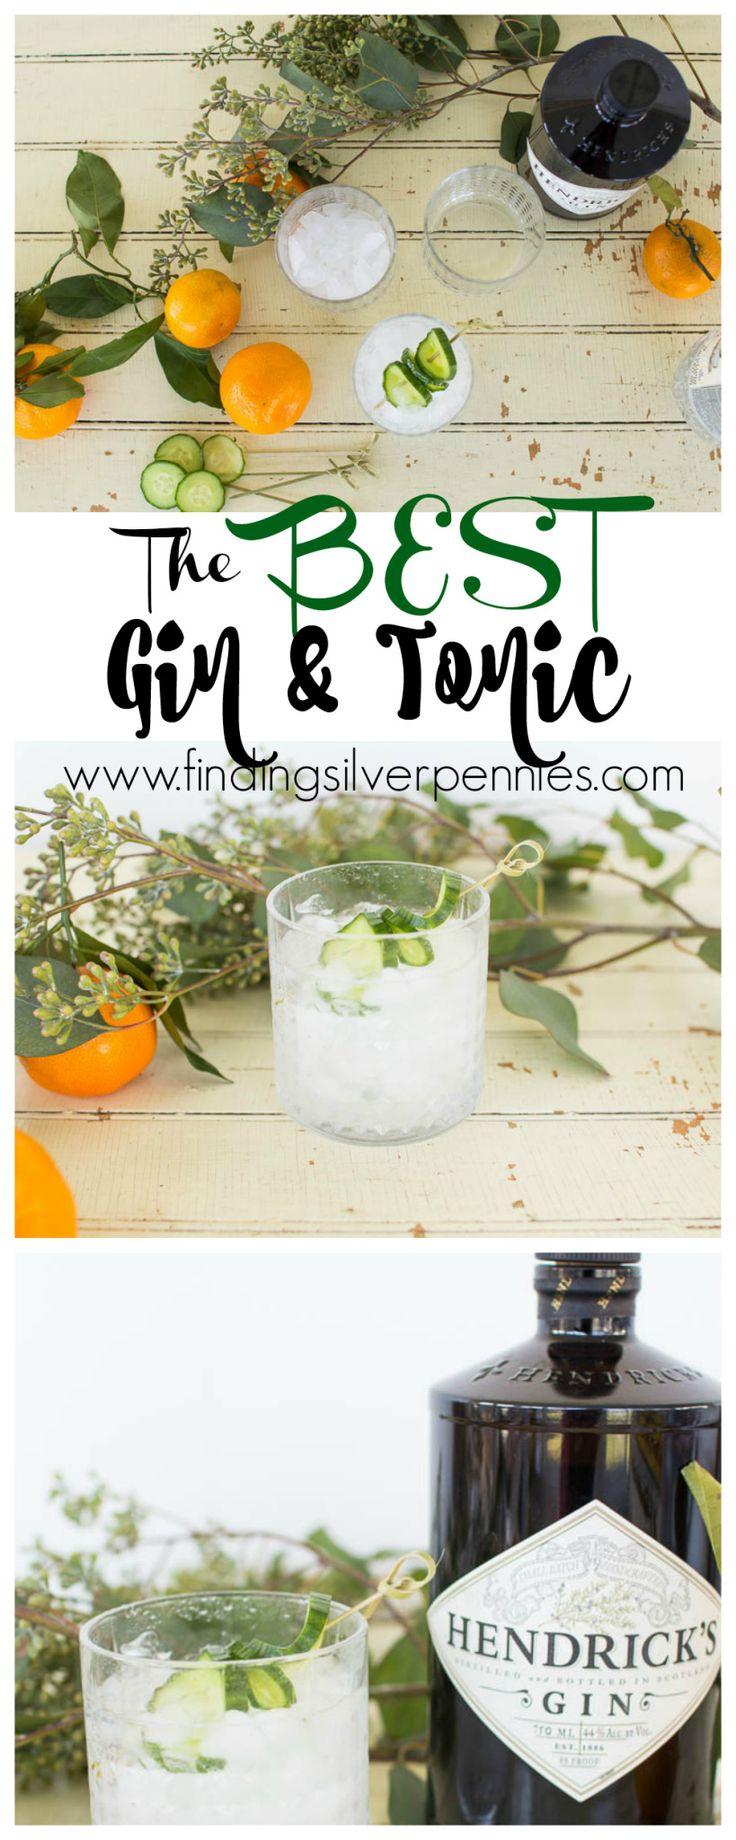 How to Make the Best Gin and Tonic Finding Silver Pennies